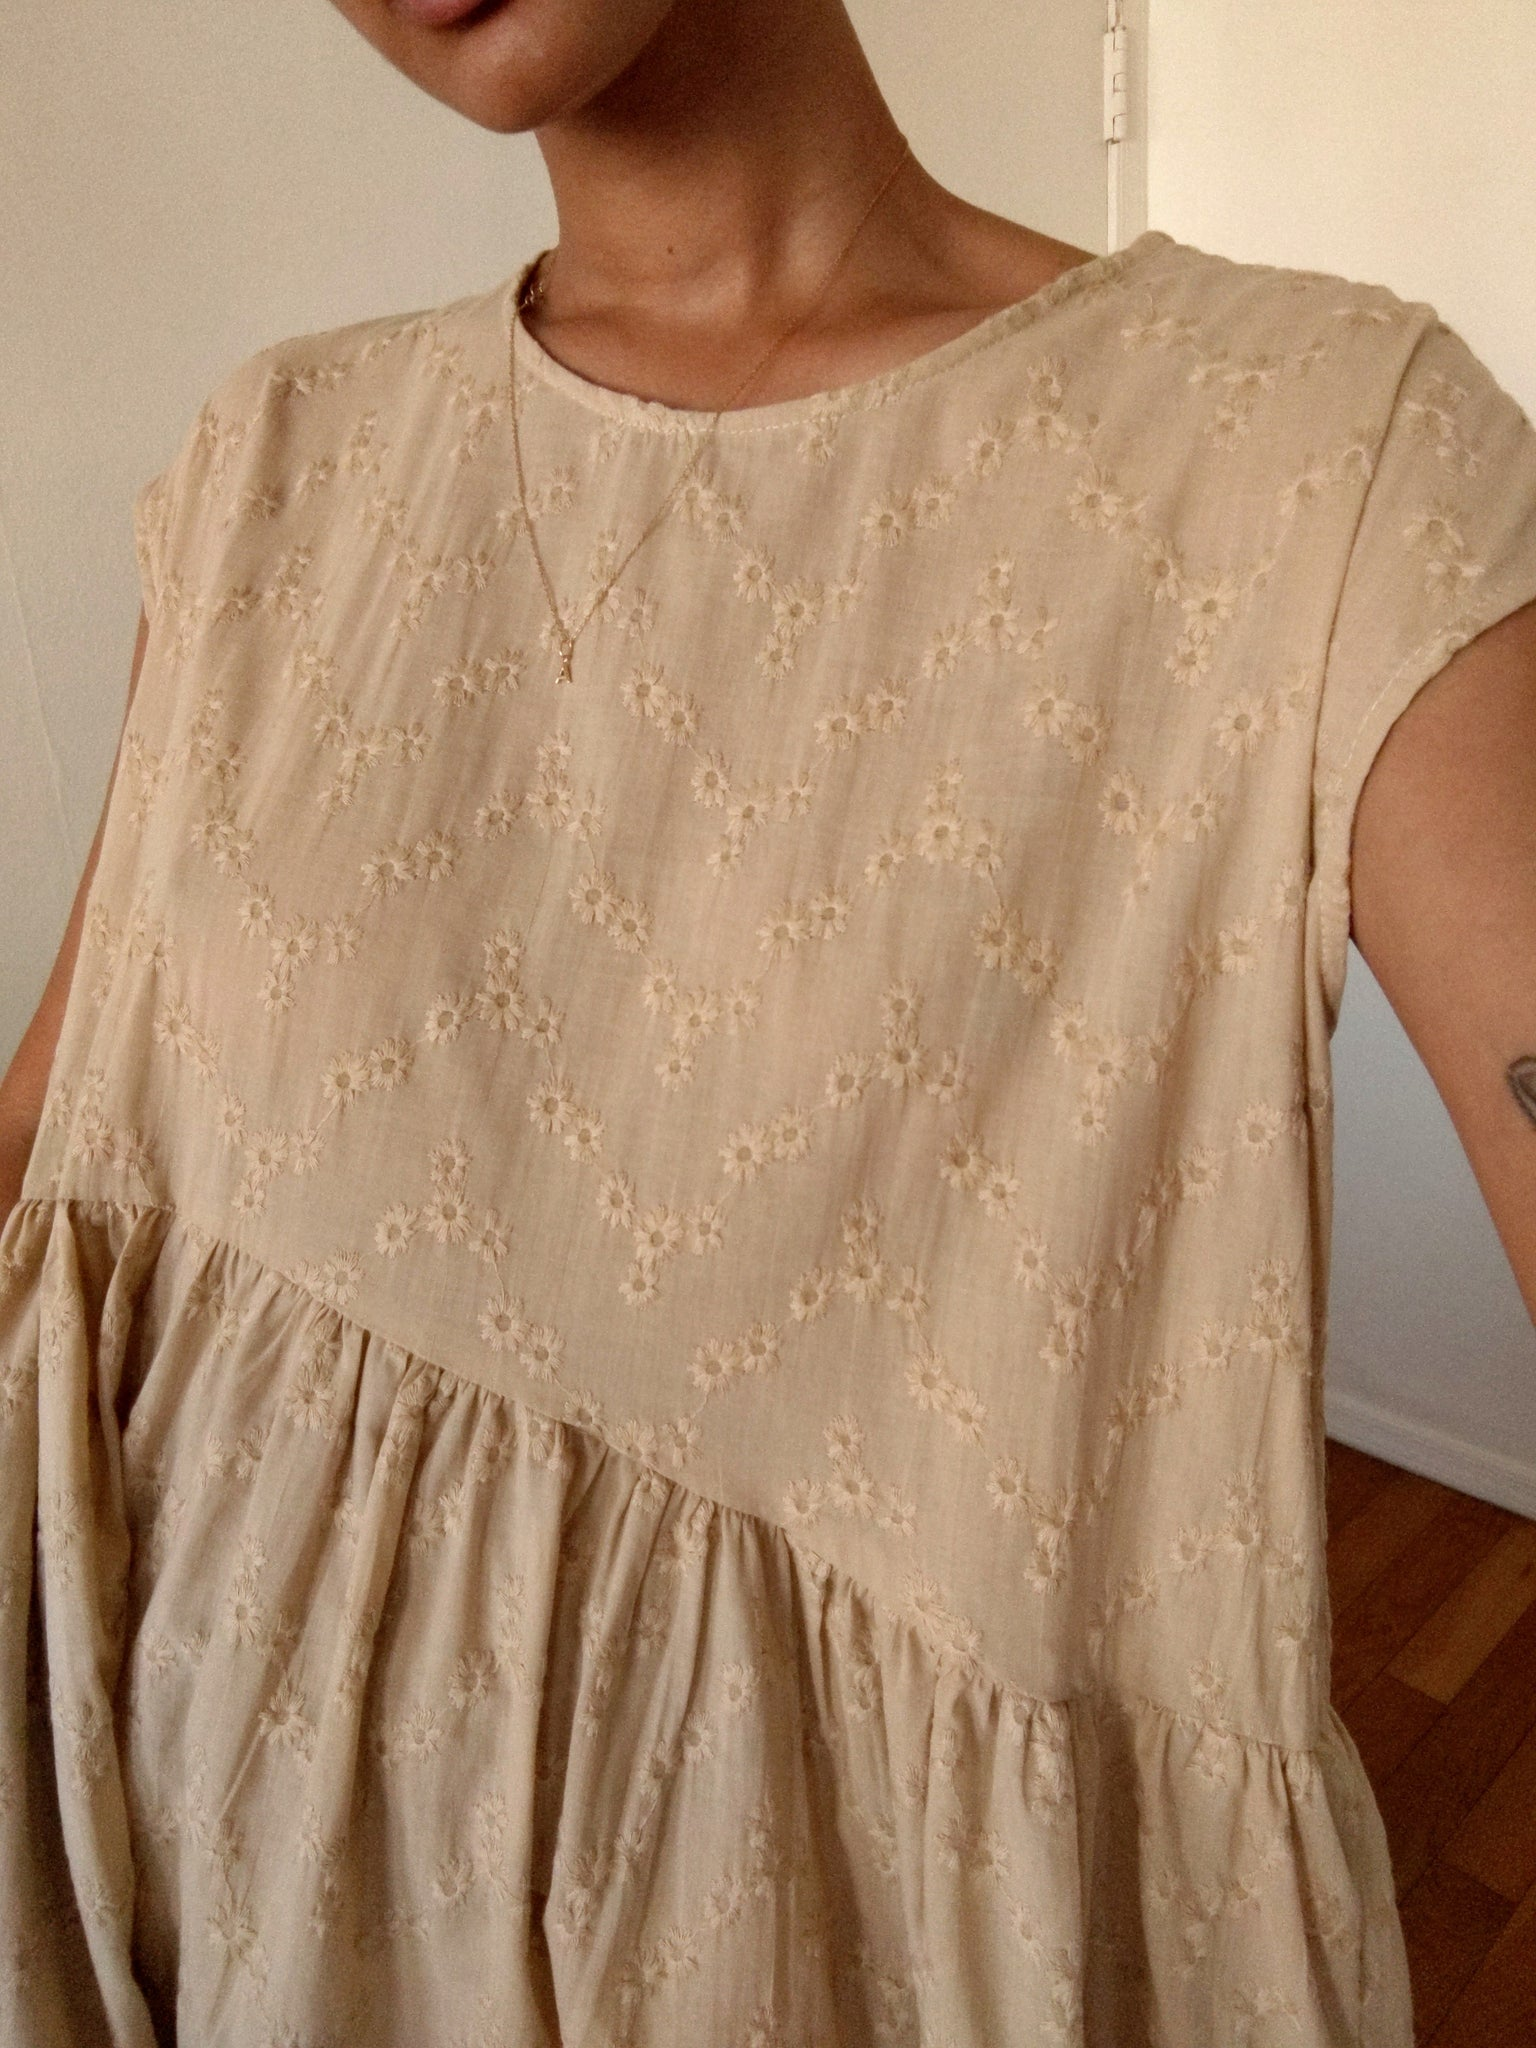 Rosario Dress (Short) in Tan Eyelet